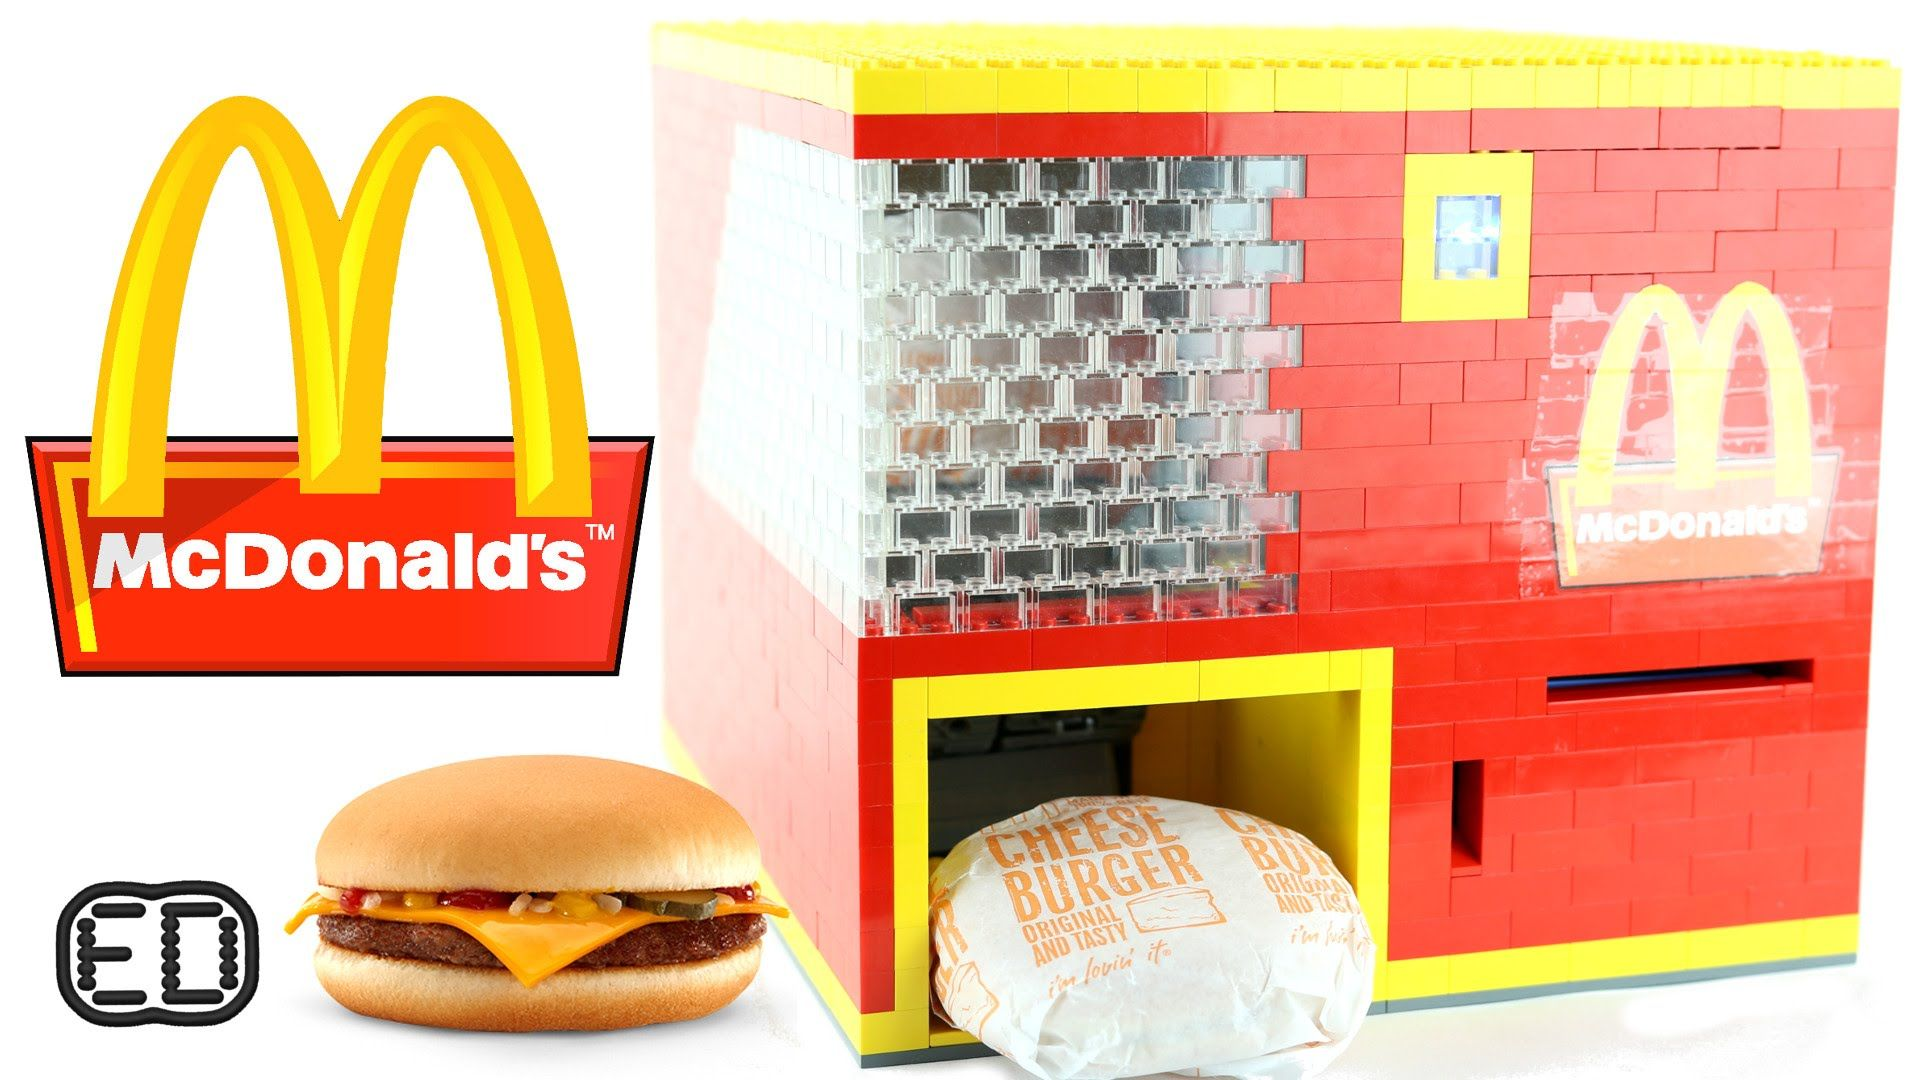 This All New Homemade Lego Mcdonalds Cheeseburger Machine Features Dollar Bill Detection And A Rail Dispensing Syst Lego Candy Machine Lego Mcdonalds Mcdonalds